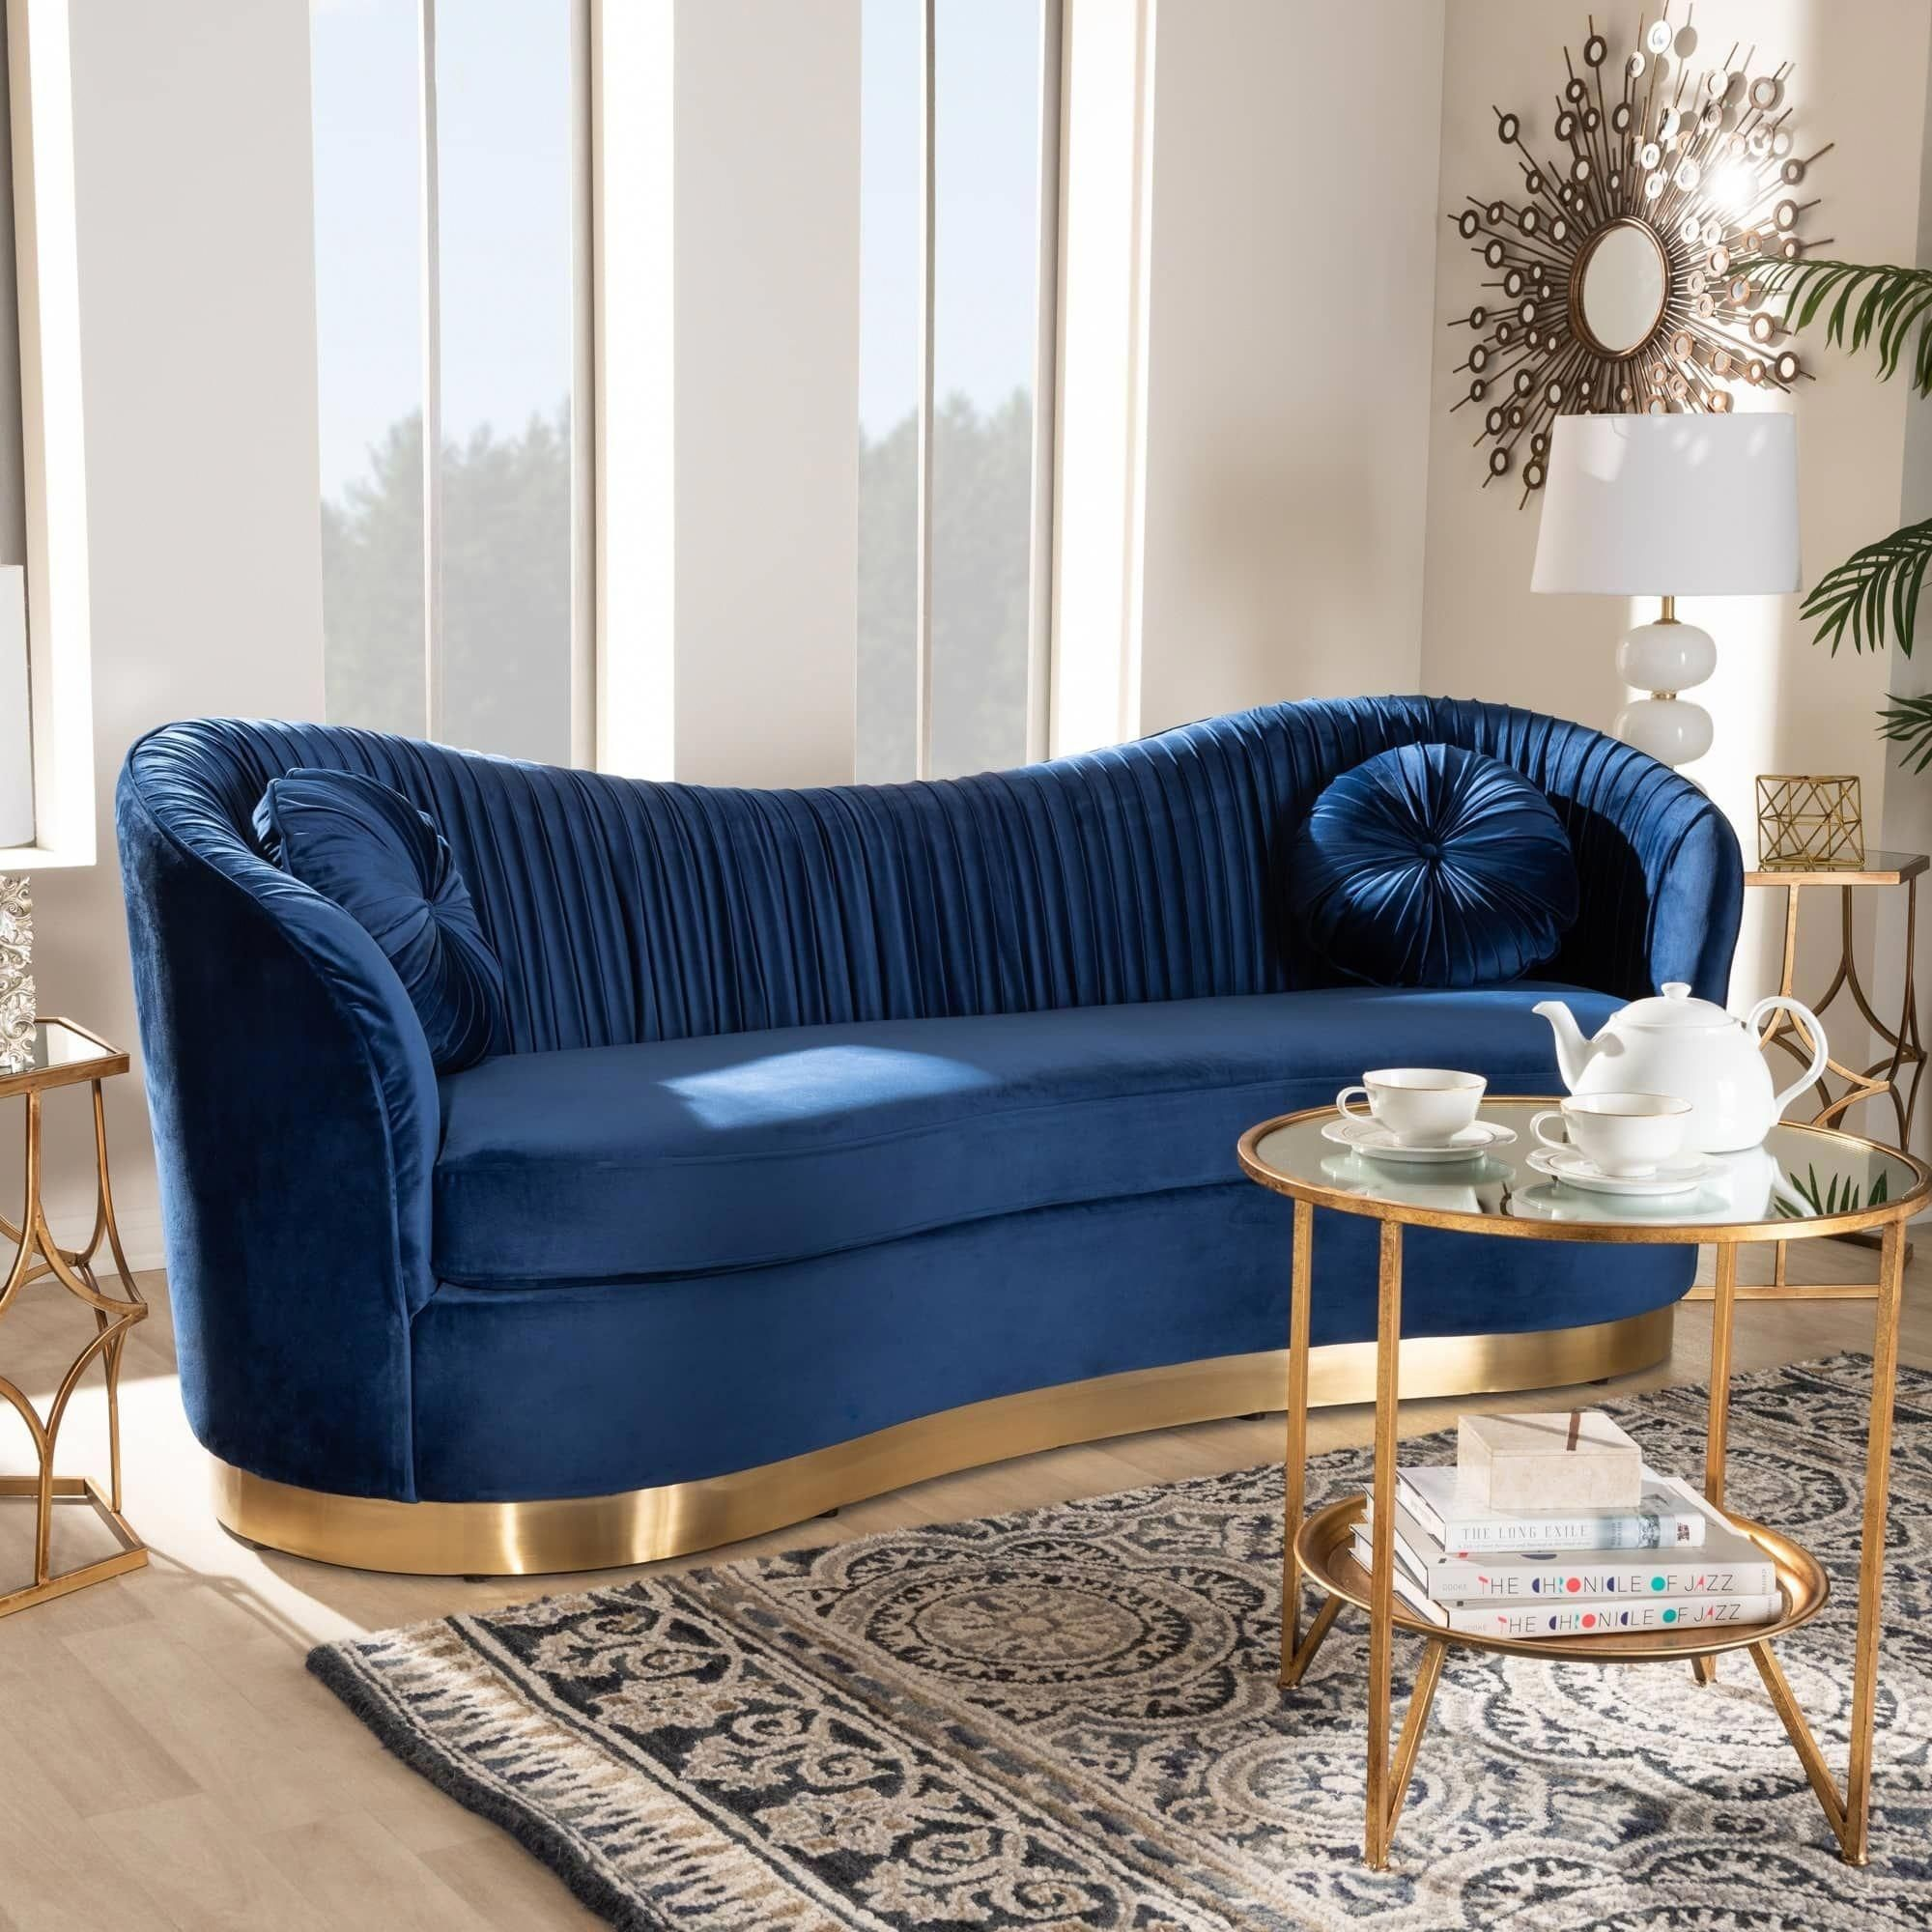 Tones Of Brown In Decoration 60 Ideas With Photos And Designs In 2020 Blue Velvet Sofa Living Room Blue Velvet Sofa Living Room Sofa